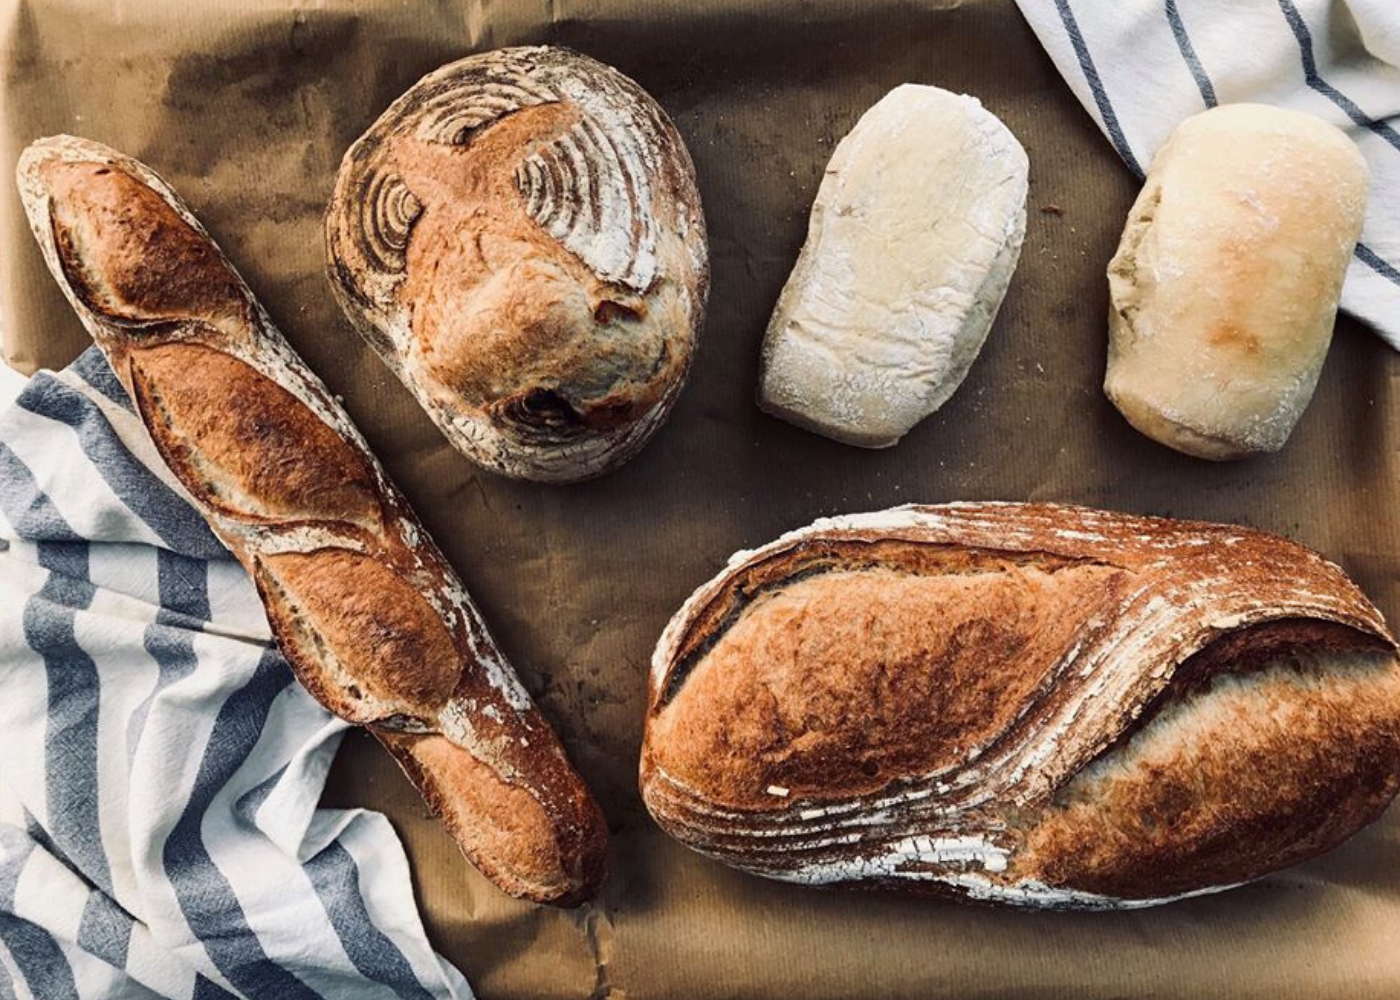 Bakeries in Singapore: Bread and Hearth